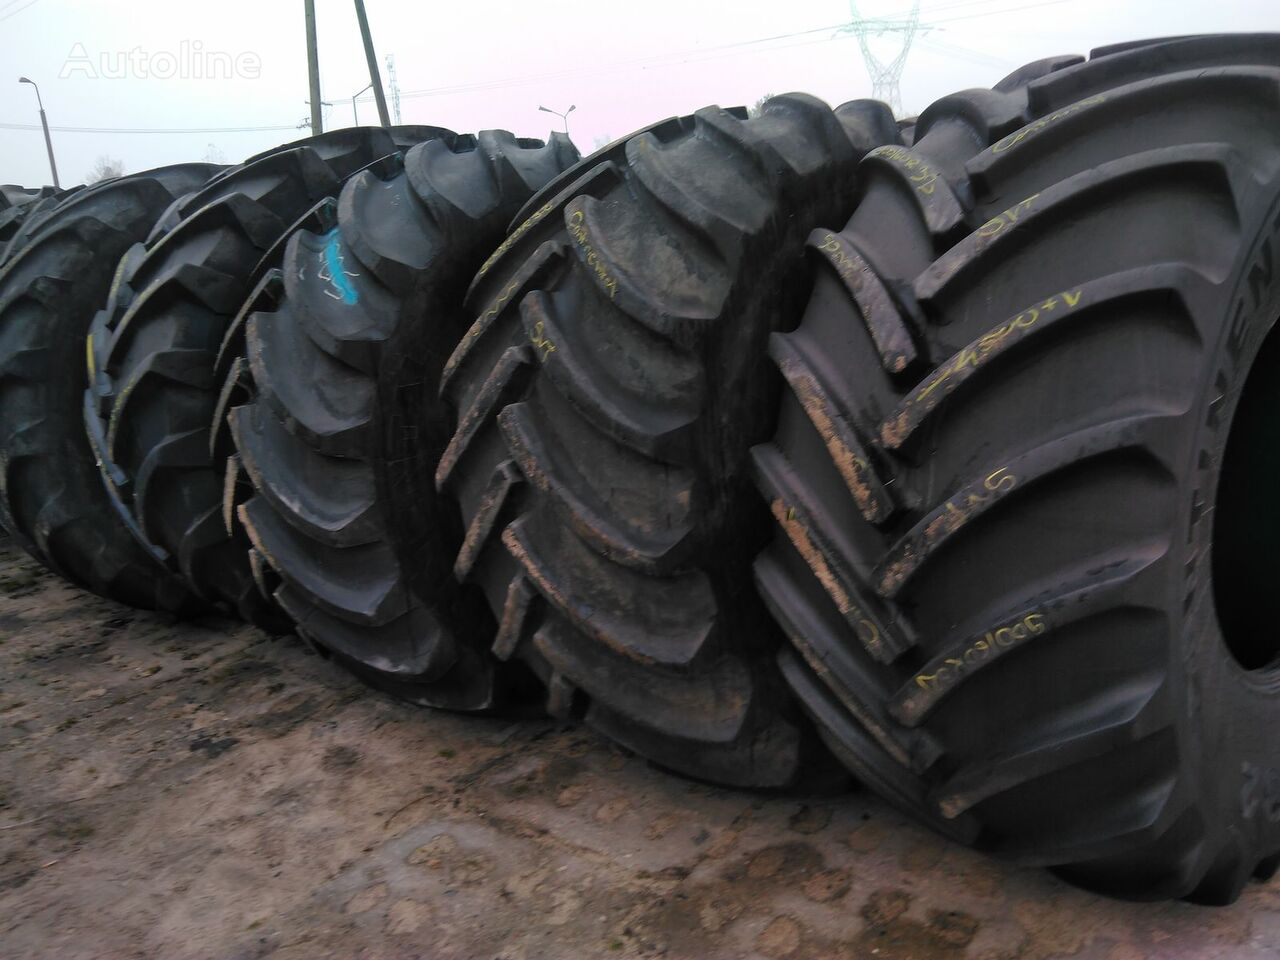 tovorna pnevmatika Goodyear Used Agricultural tires of all sizes